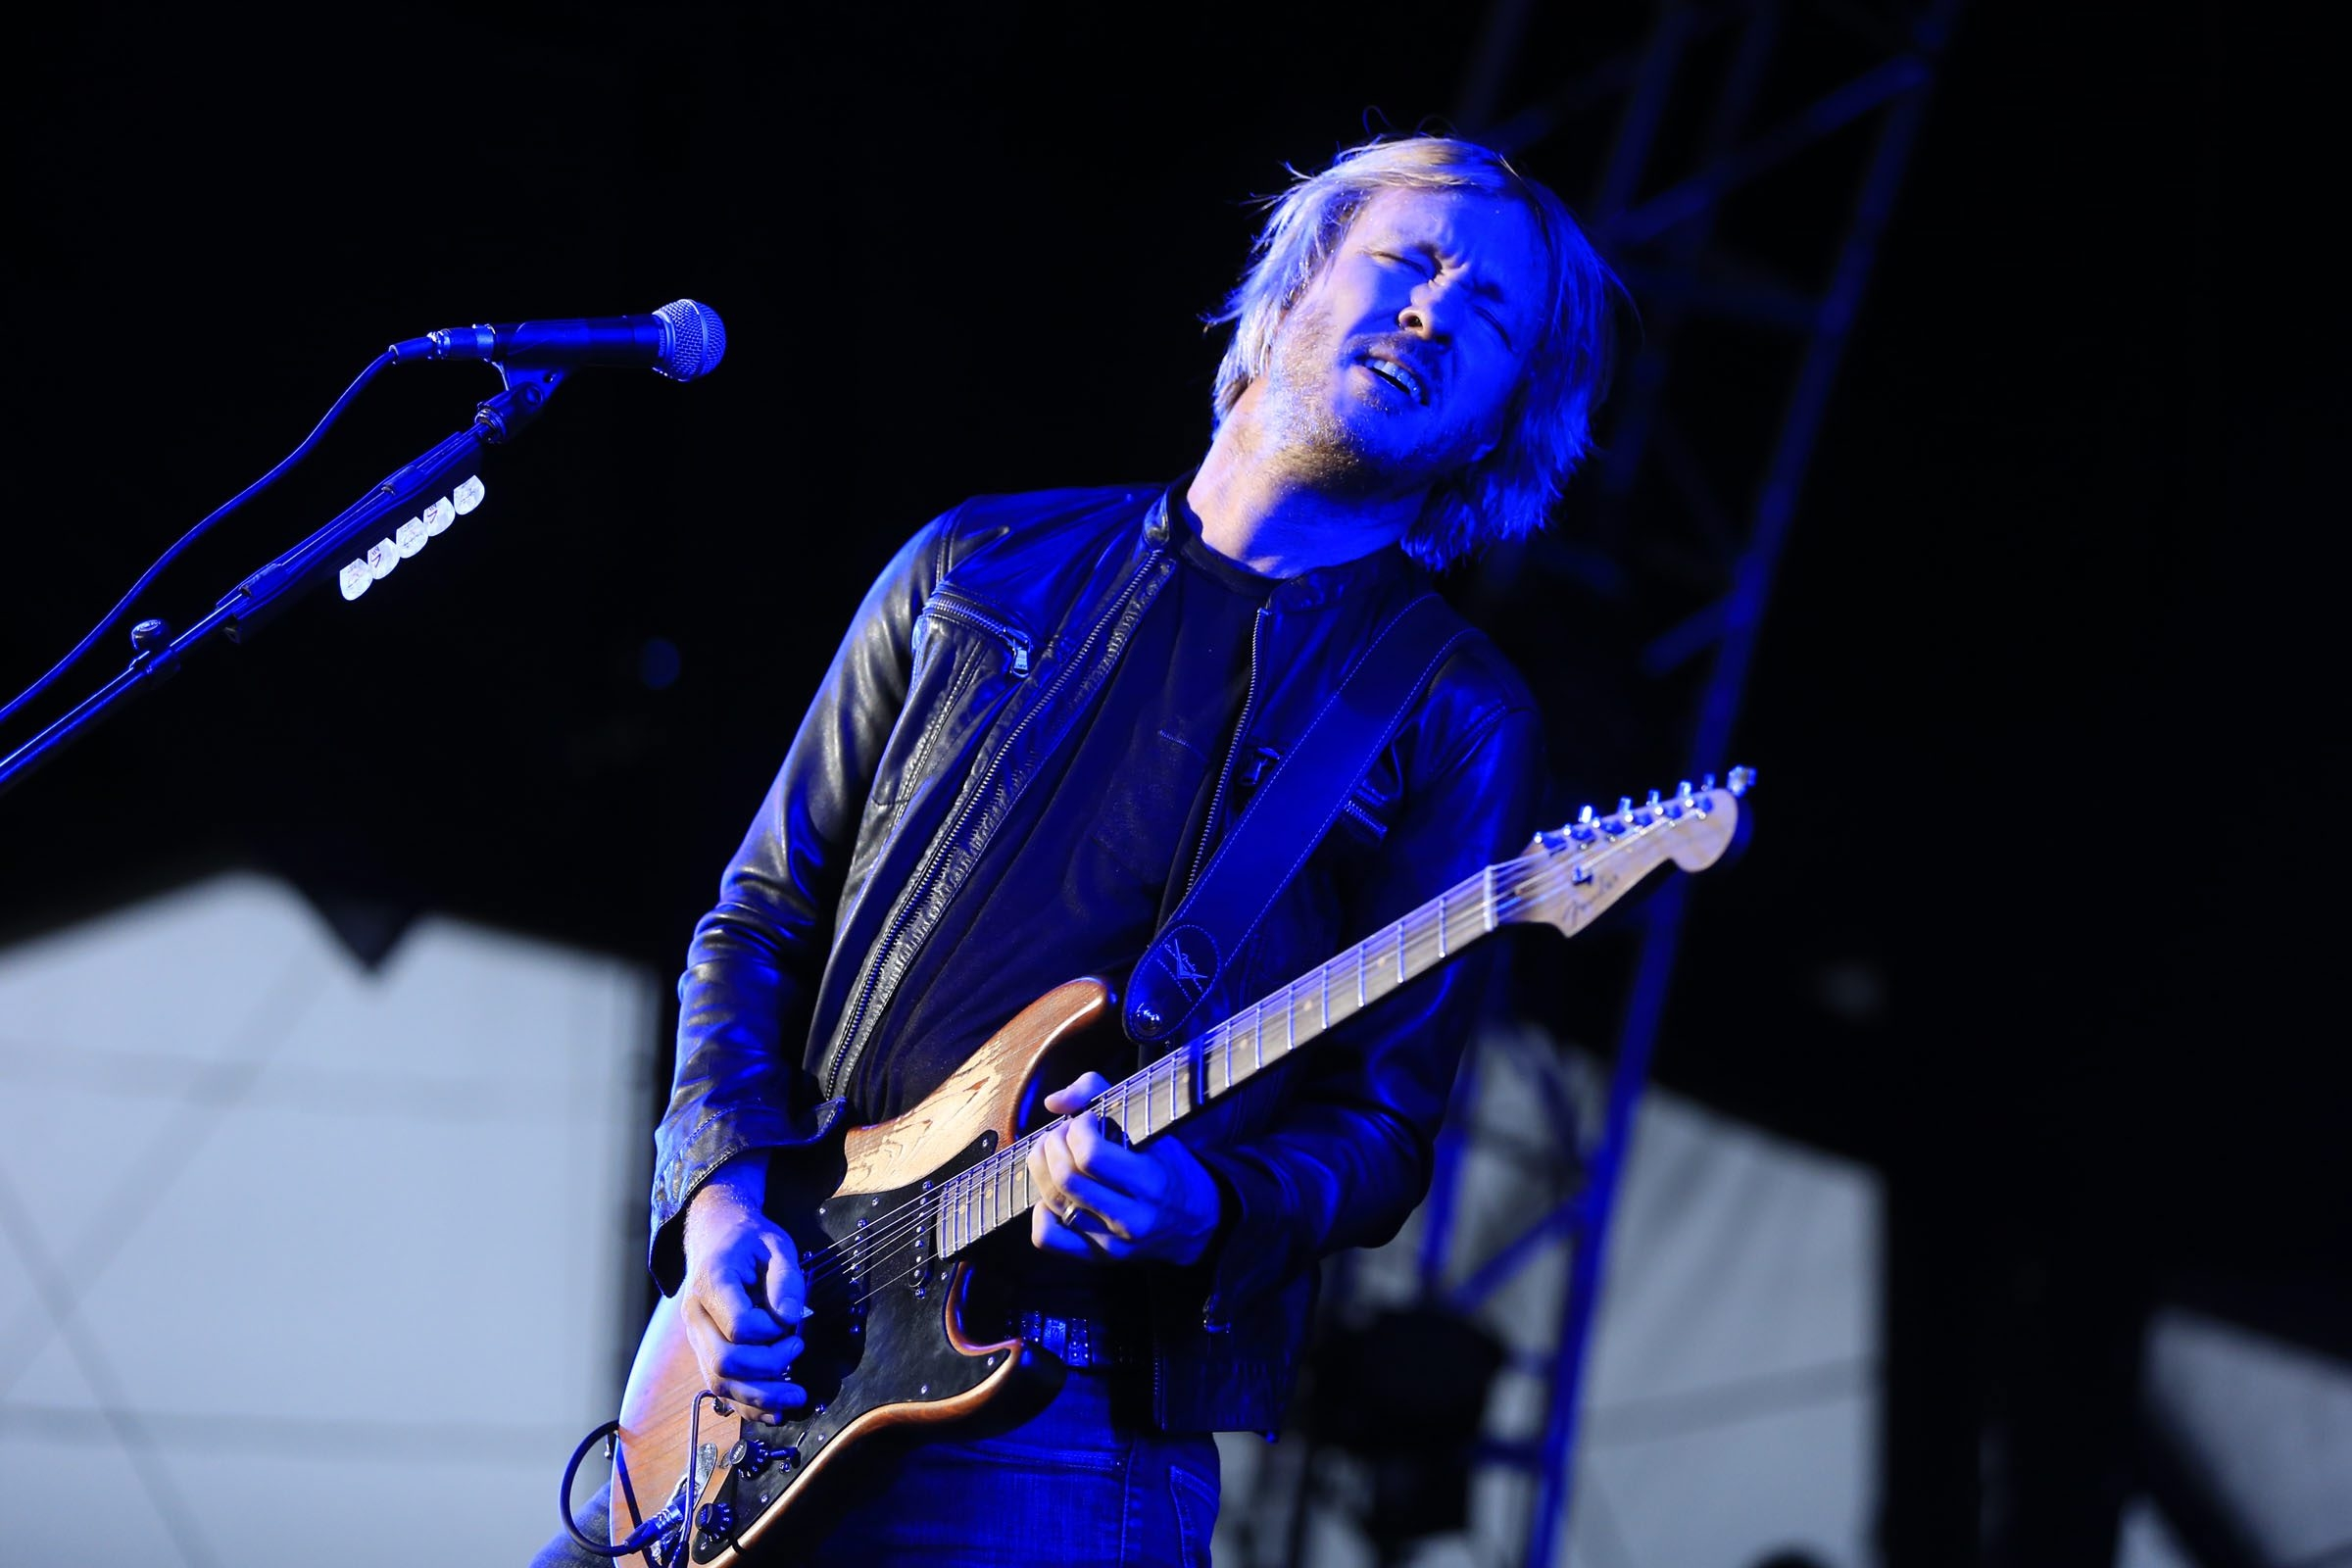 Kenny Wayne Shepherd, seen here performing at Darien Lake last summer, brought his blues to Gratwick Park in North Tonawanda on Friday.  (Harry Scull Jr./Buffalo News)